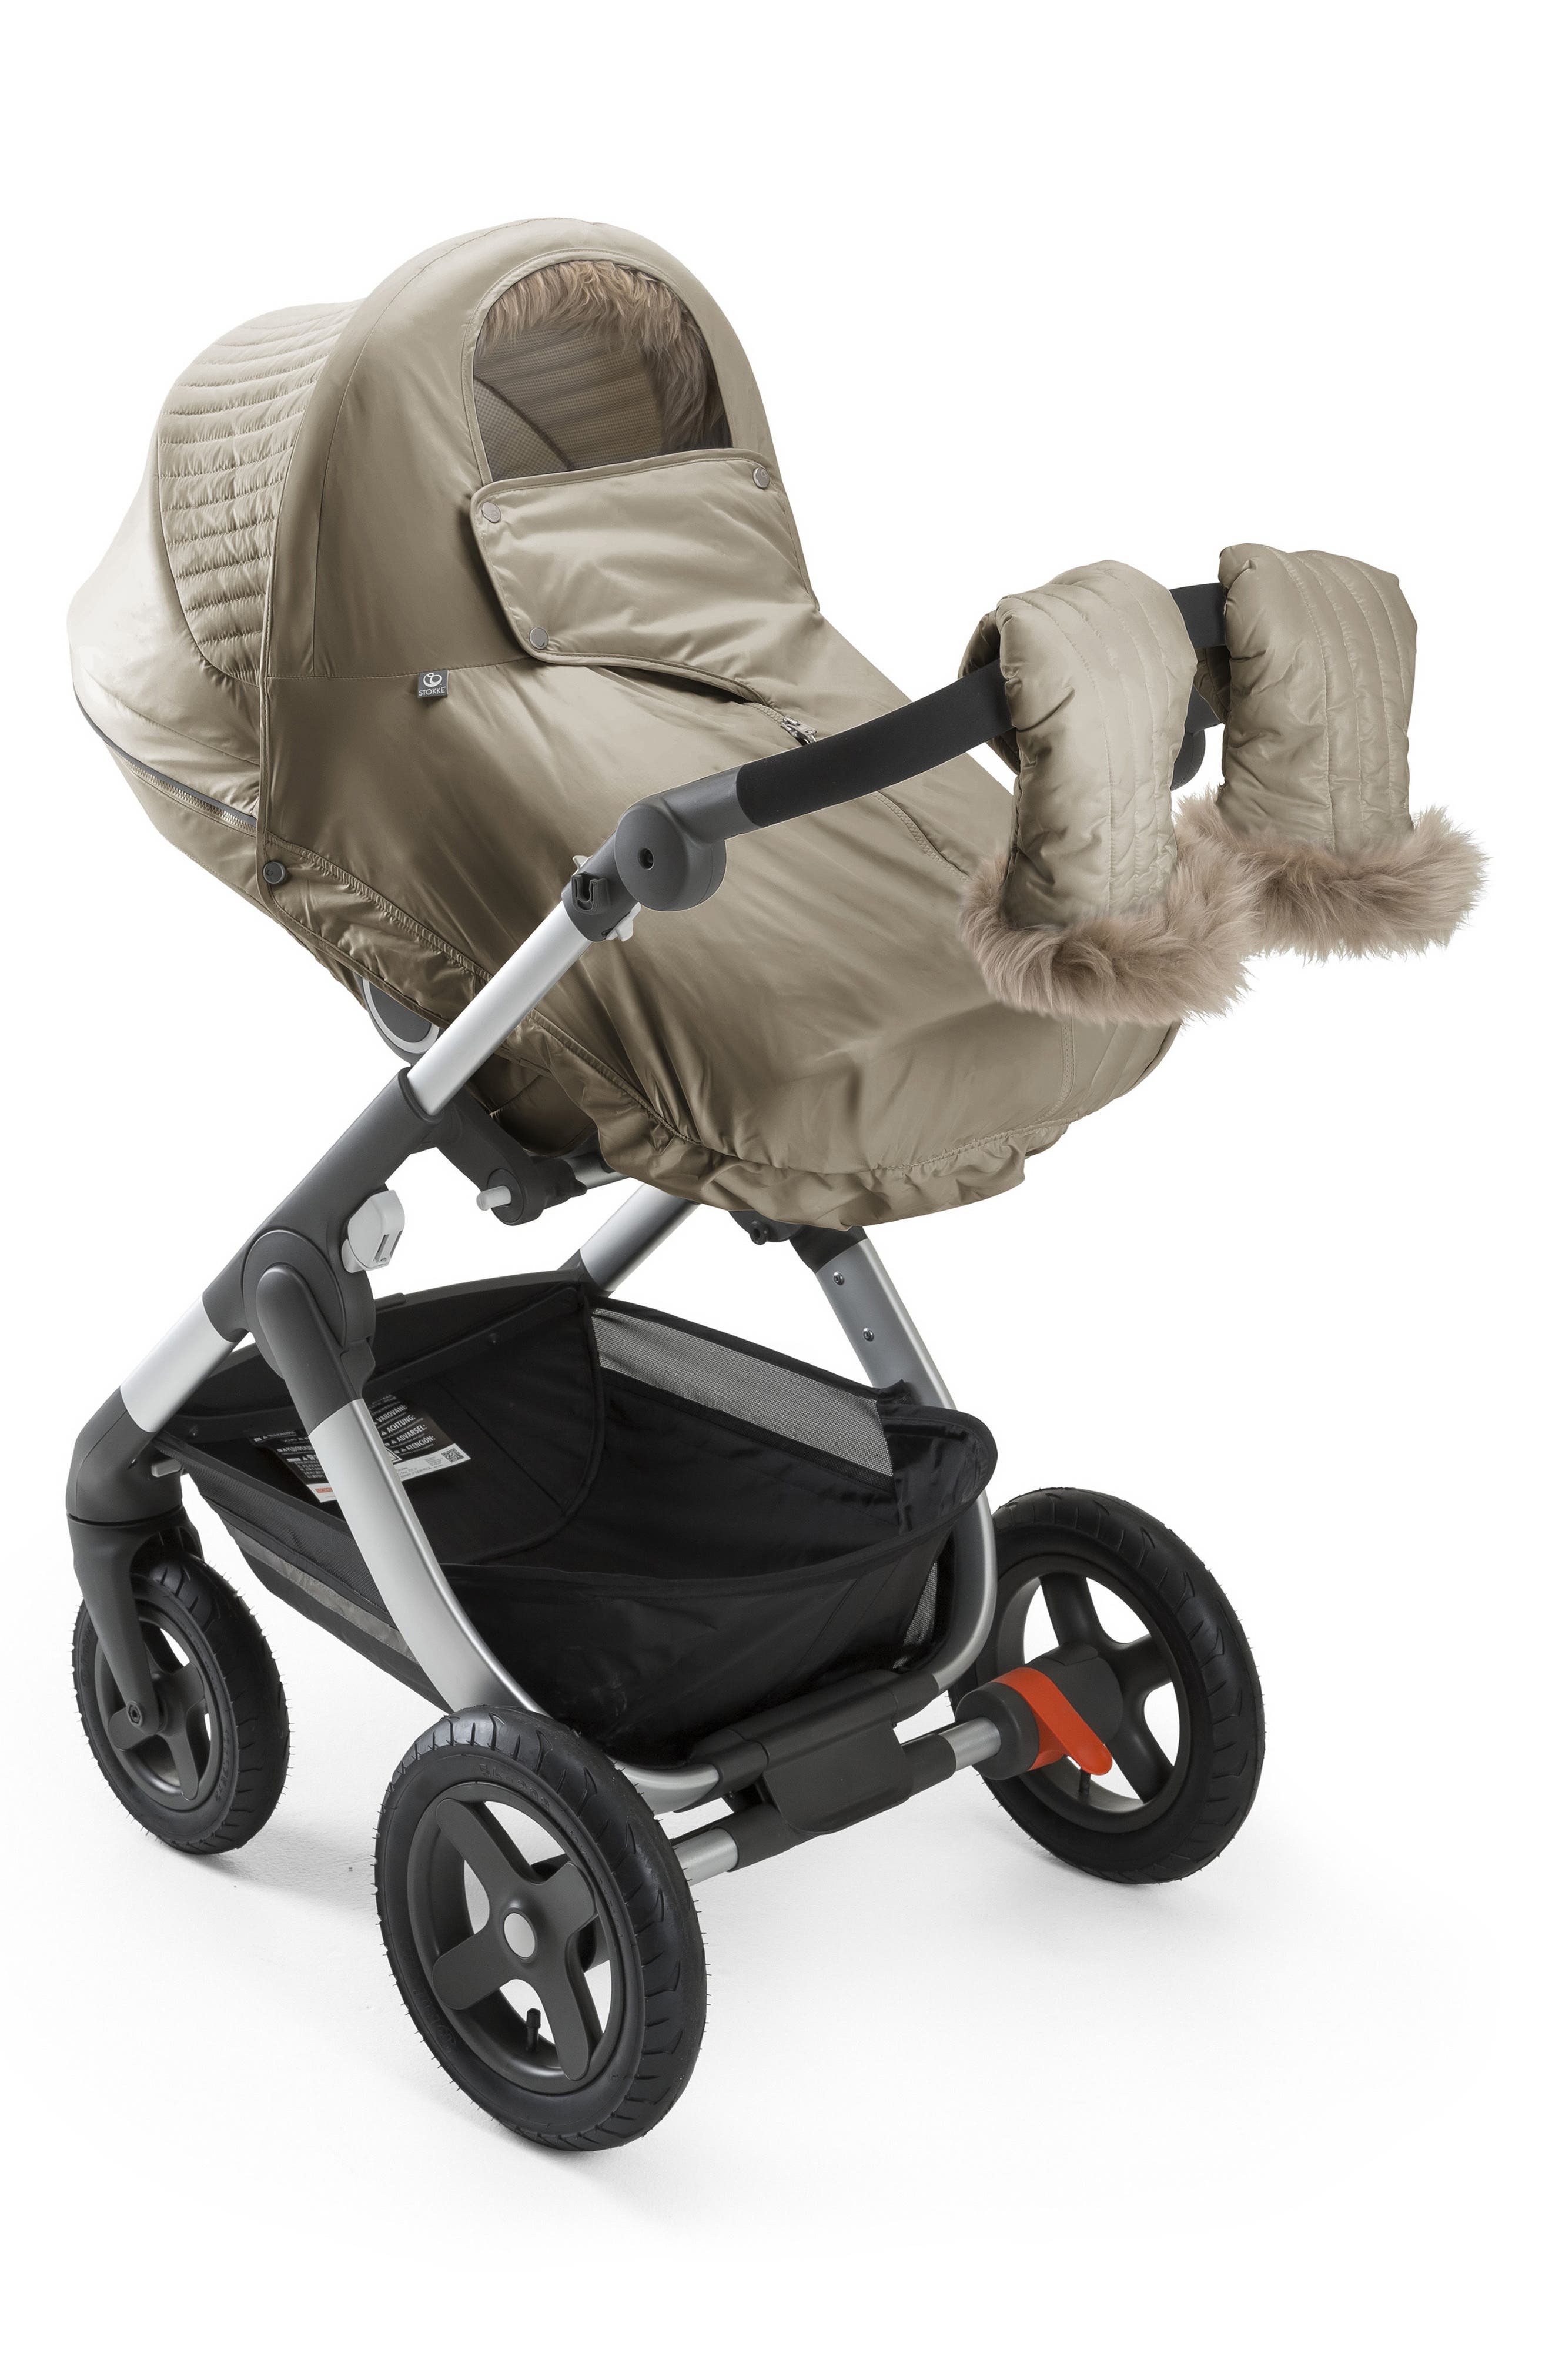 STOKKE,                             Stroller Winter Kit,                             Alternate thumbnail 2, color,                             205